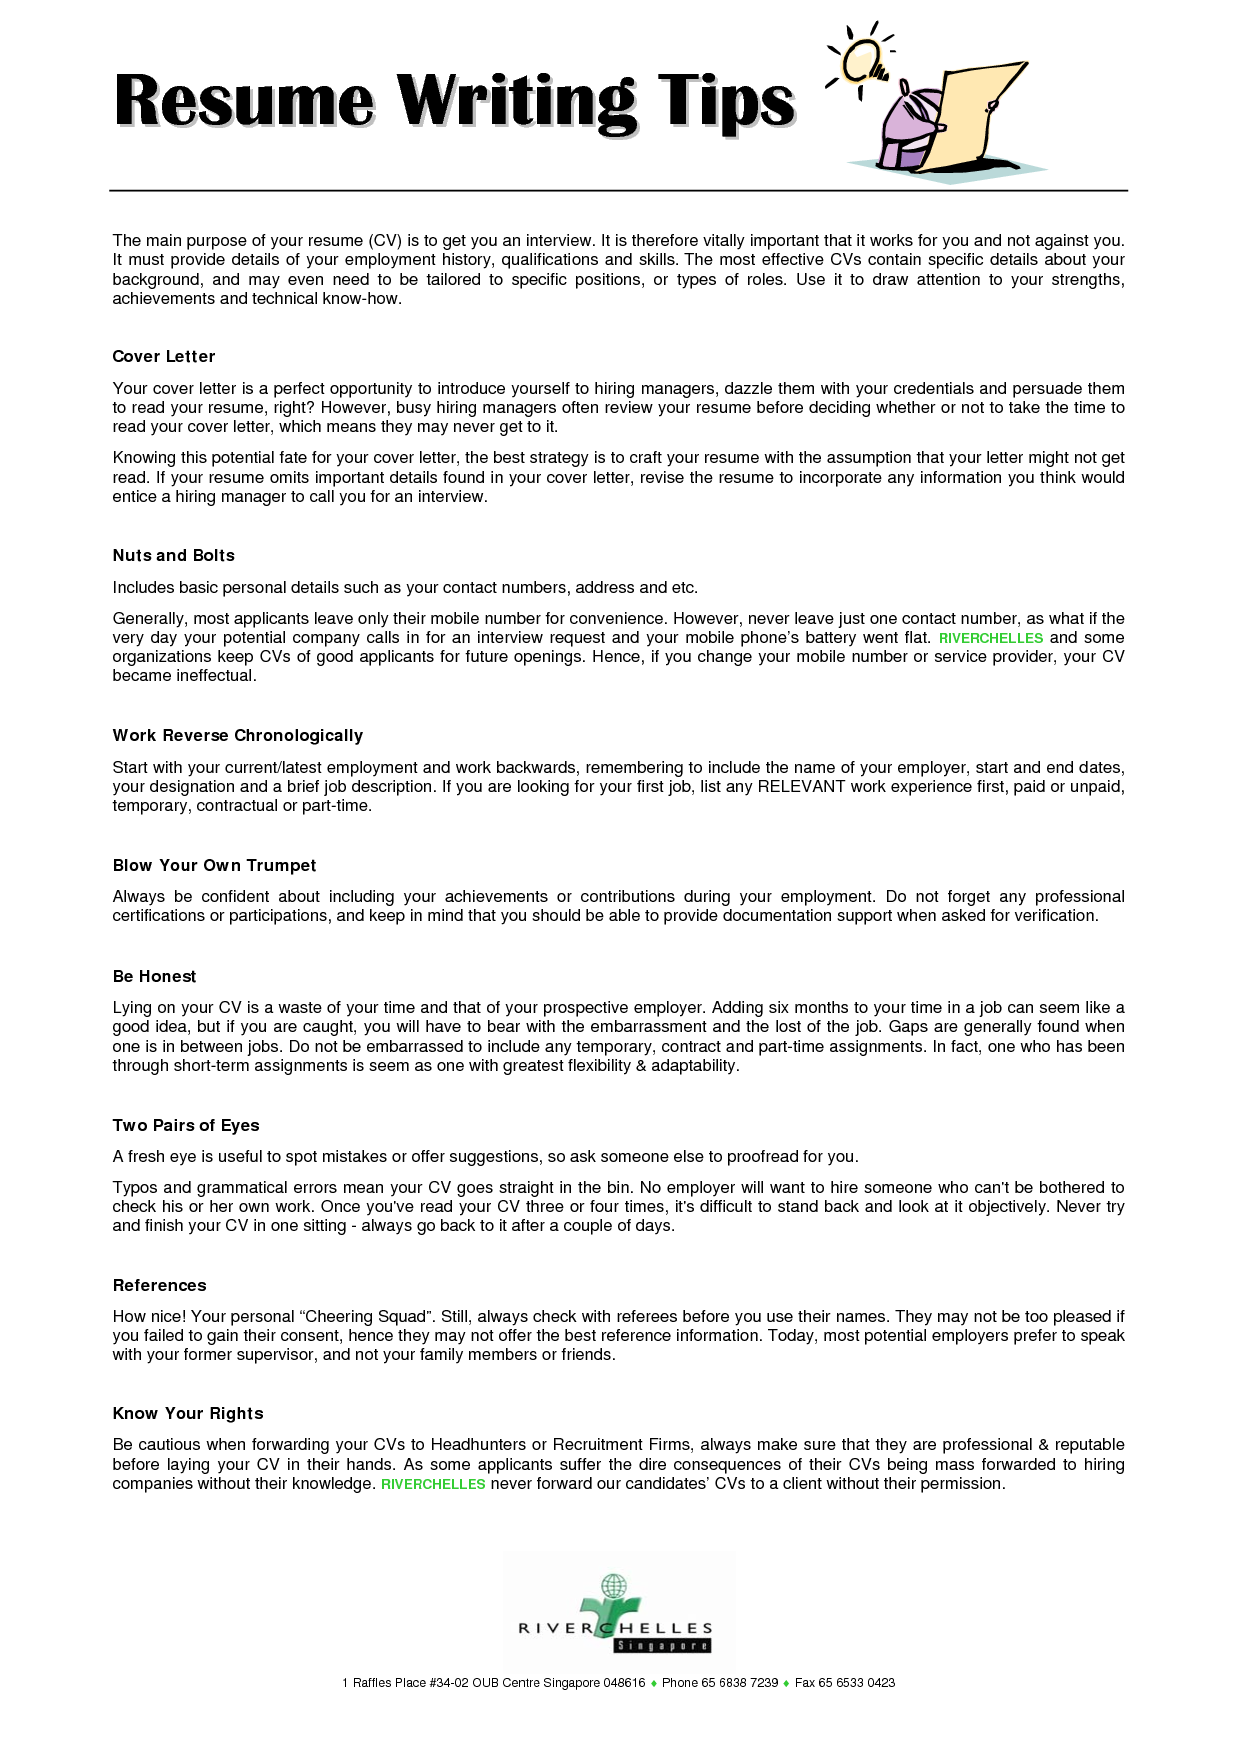 Resume Writing Tips Resume Career Pinterest